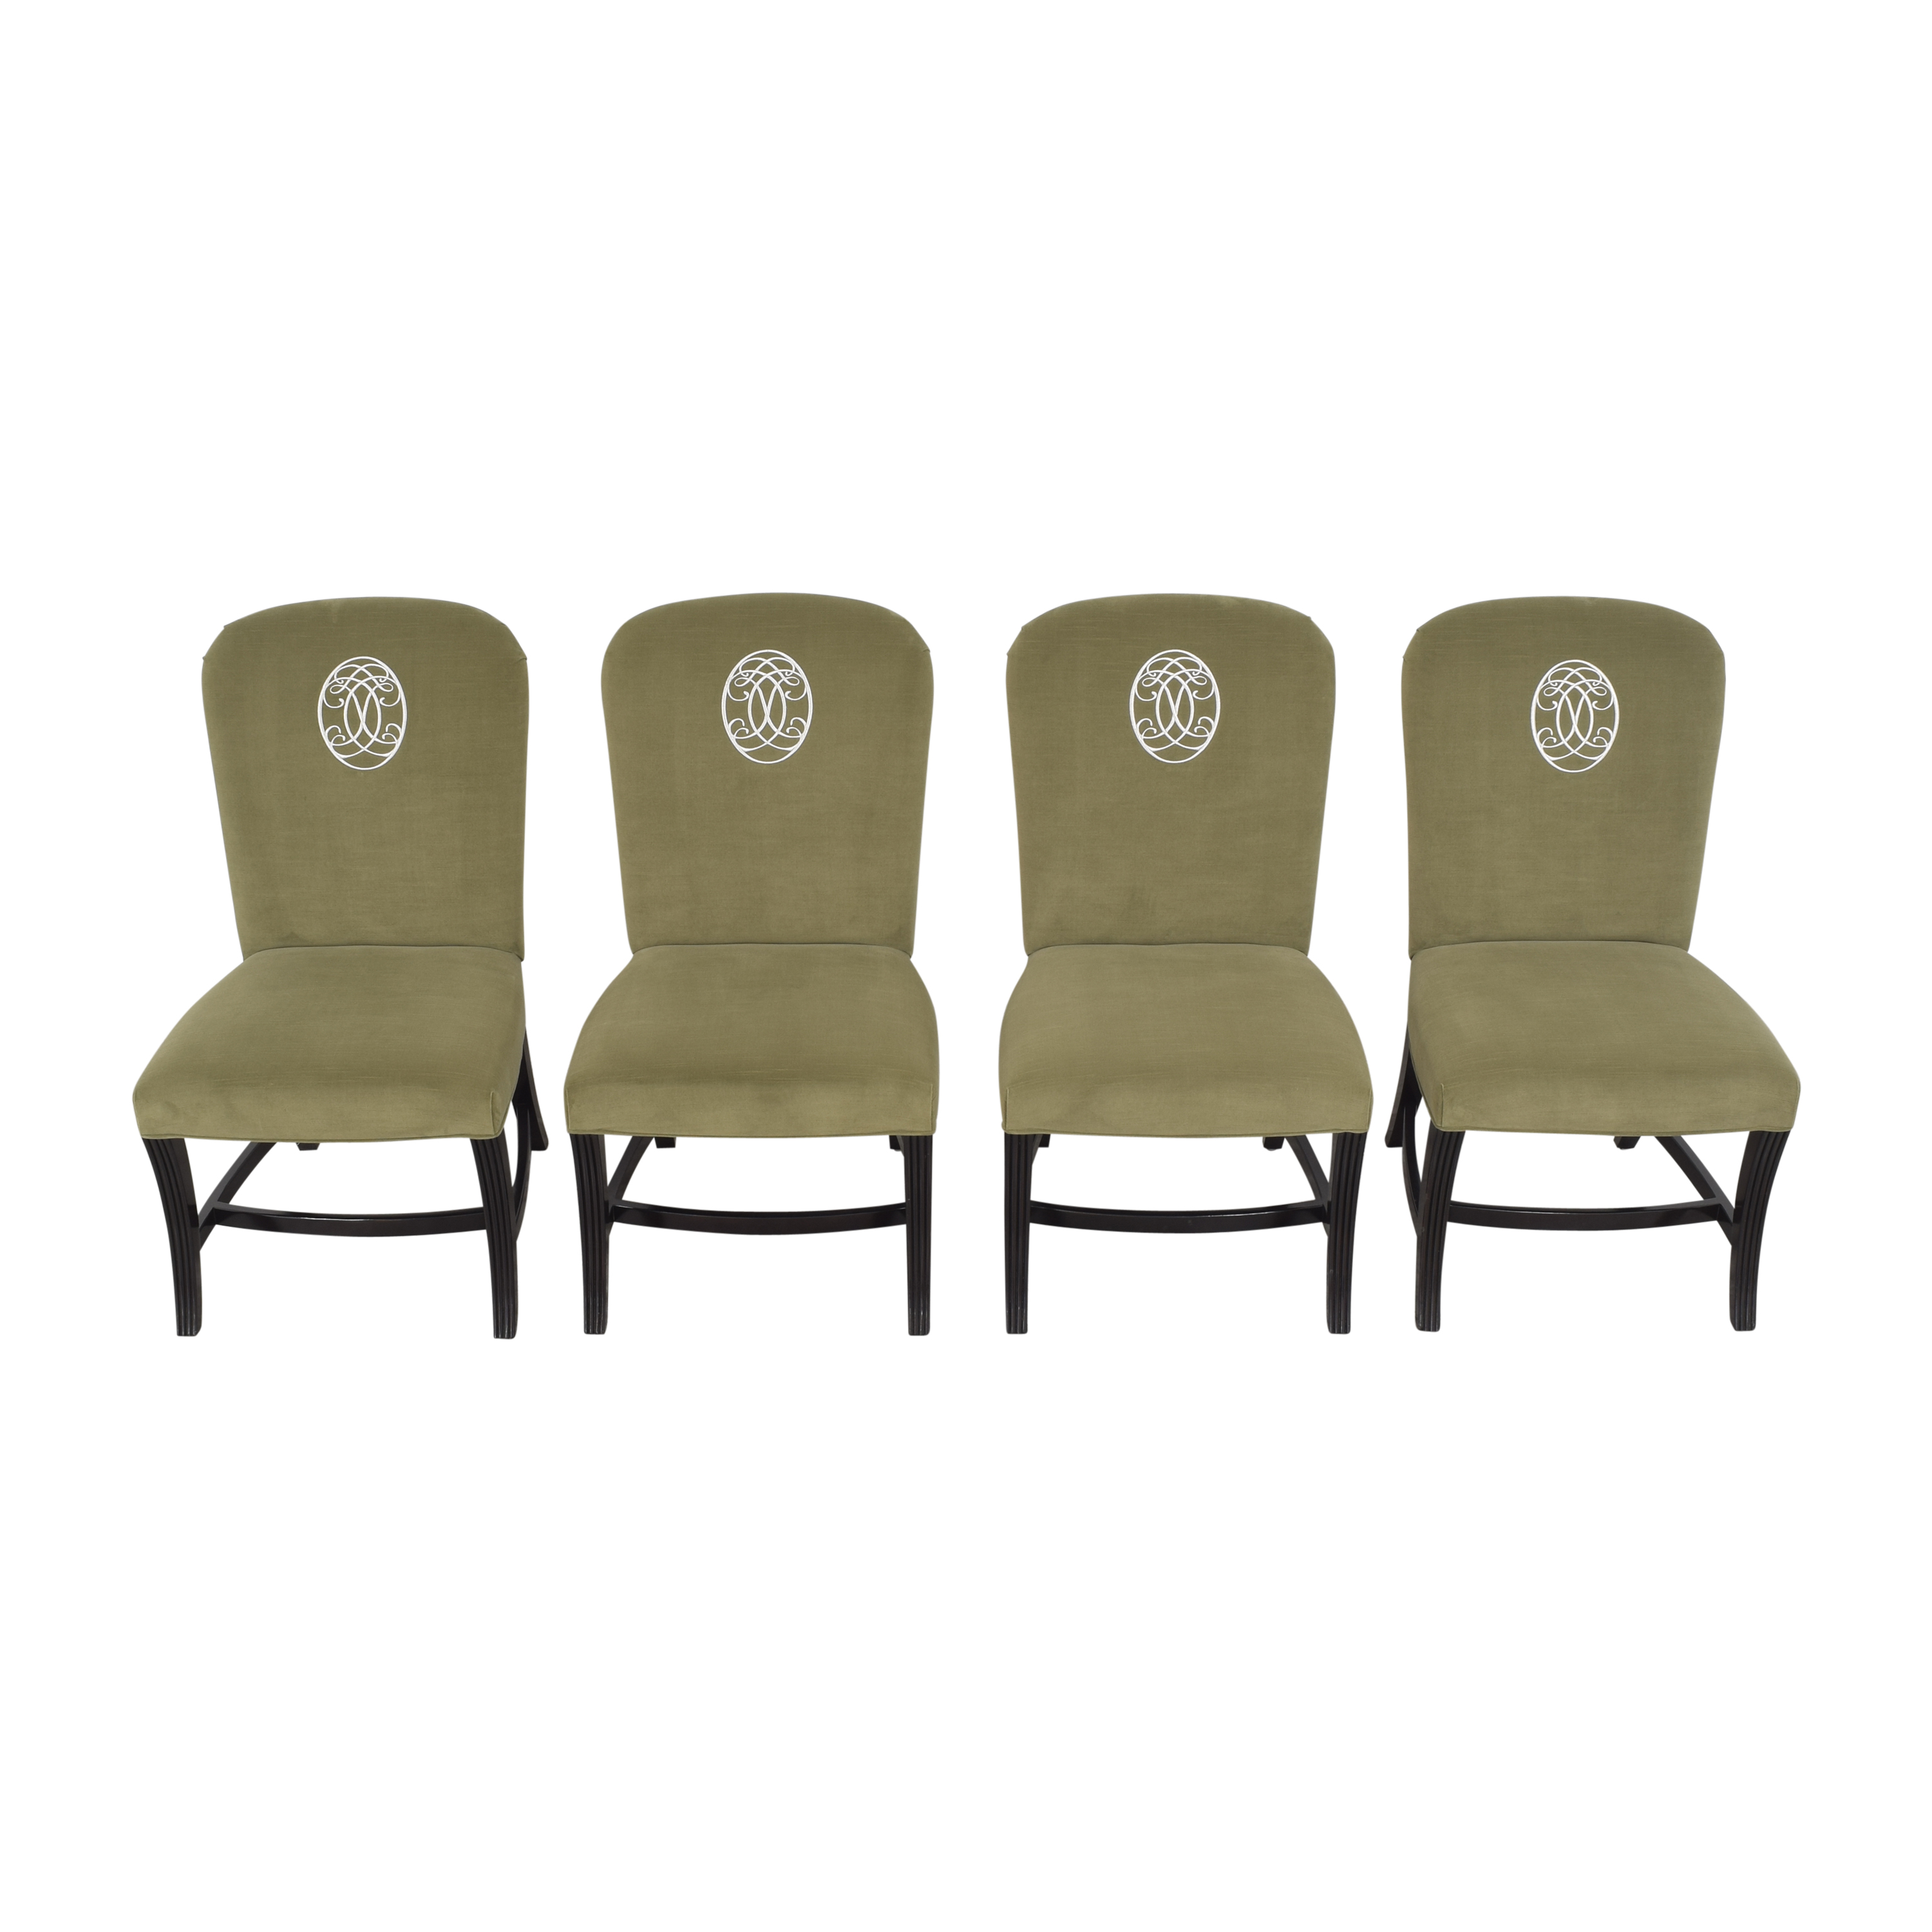 Drexel Heritage Drexel Heritage Upholstered Dining Chairs nyc